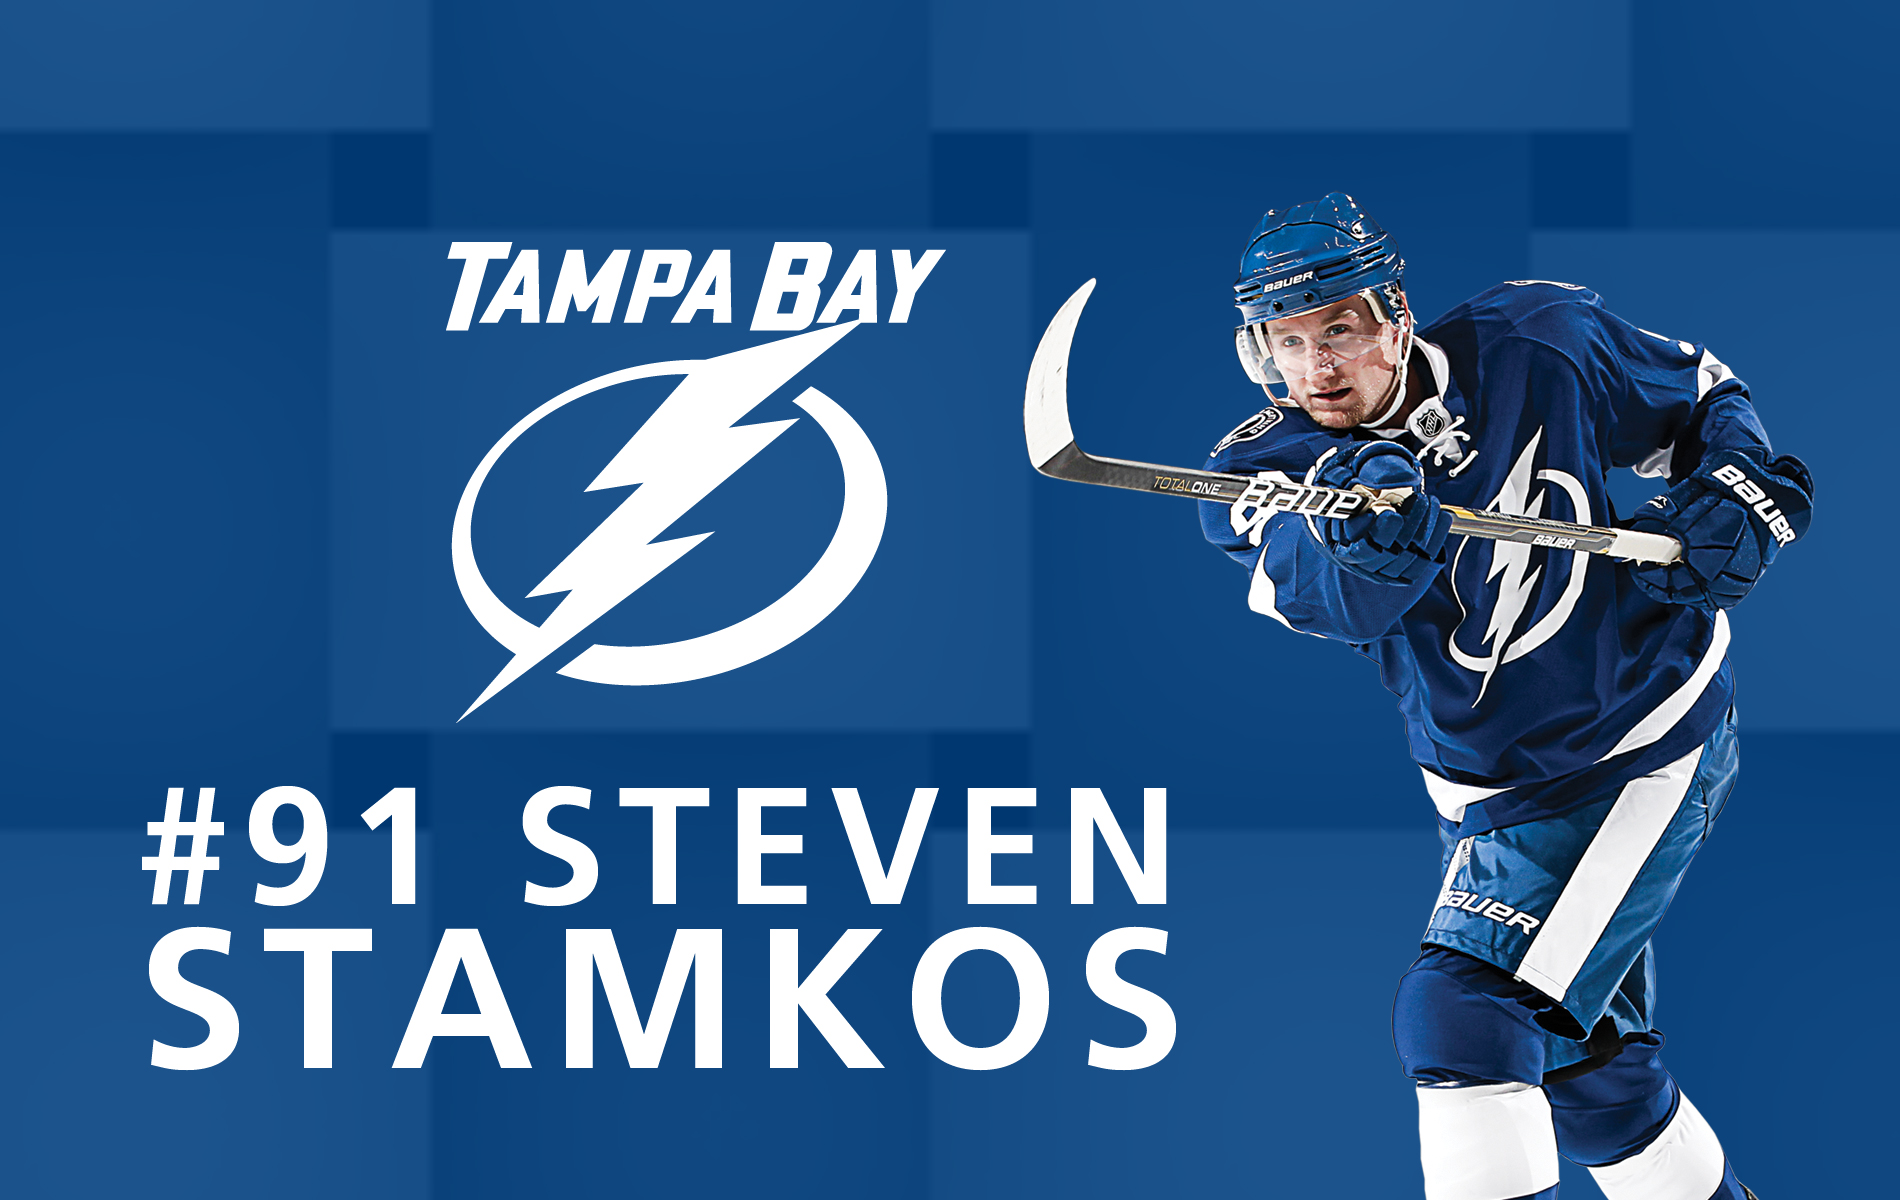 Tampa Bay Lightning images Steven Stamkos Wallpaper HD 1900x1200